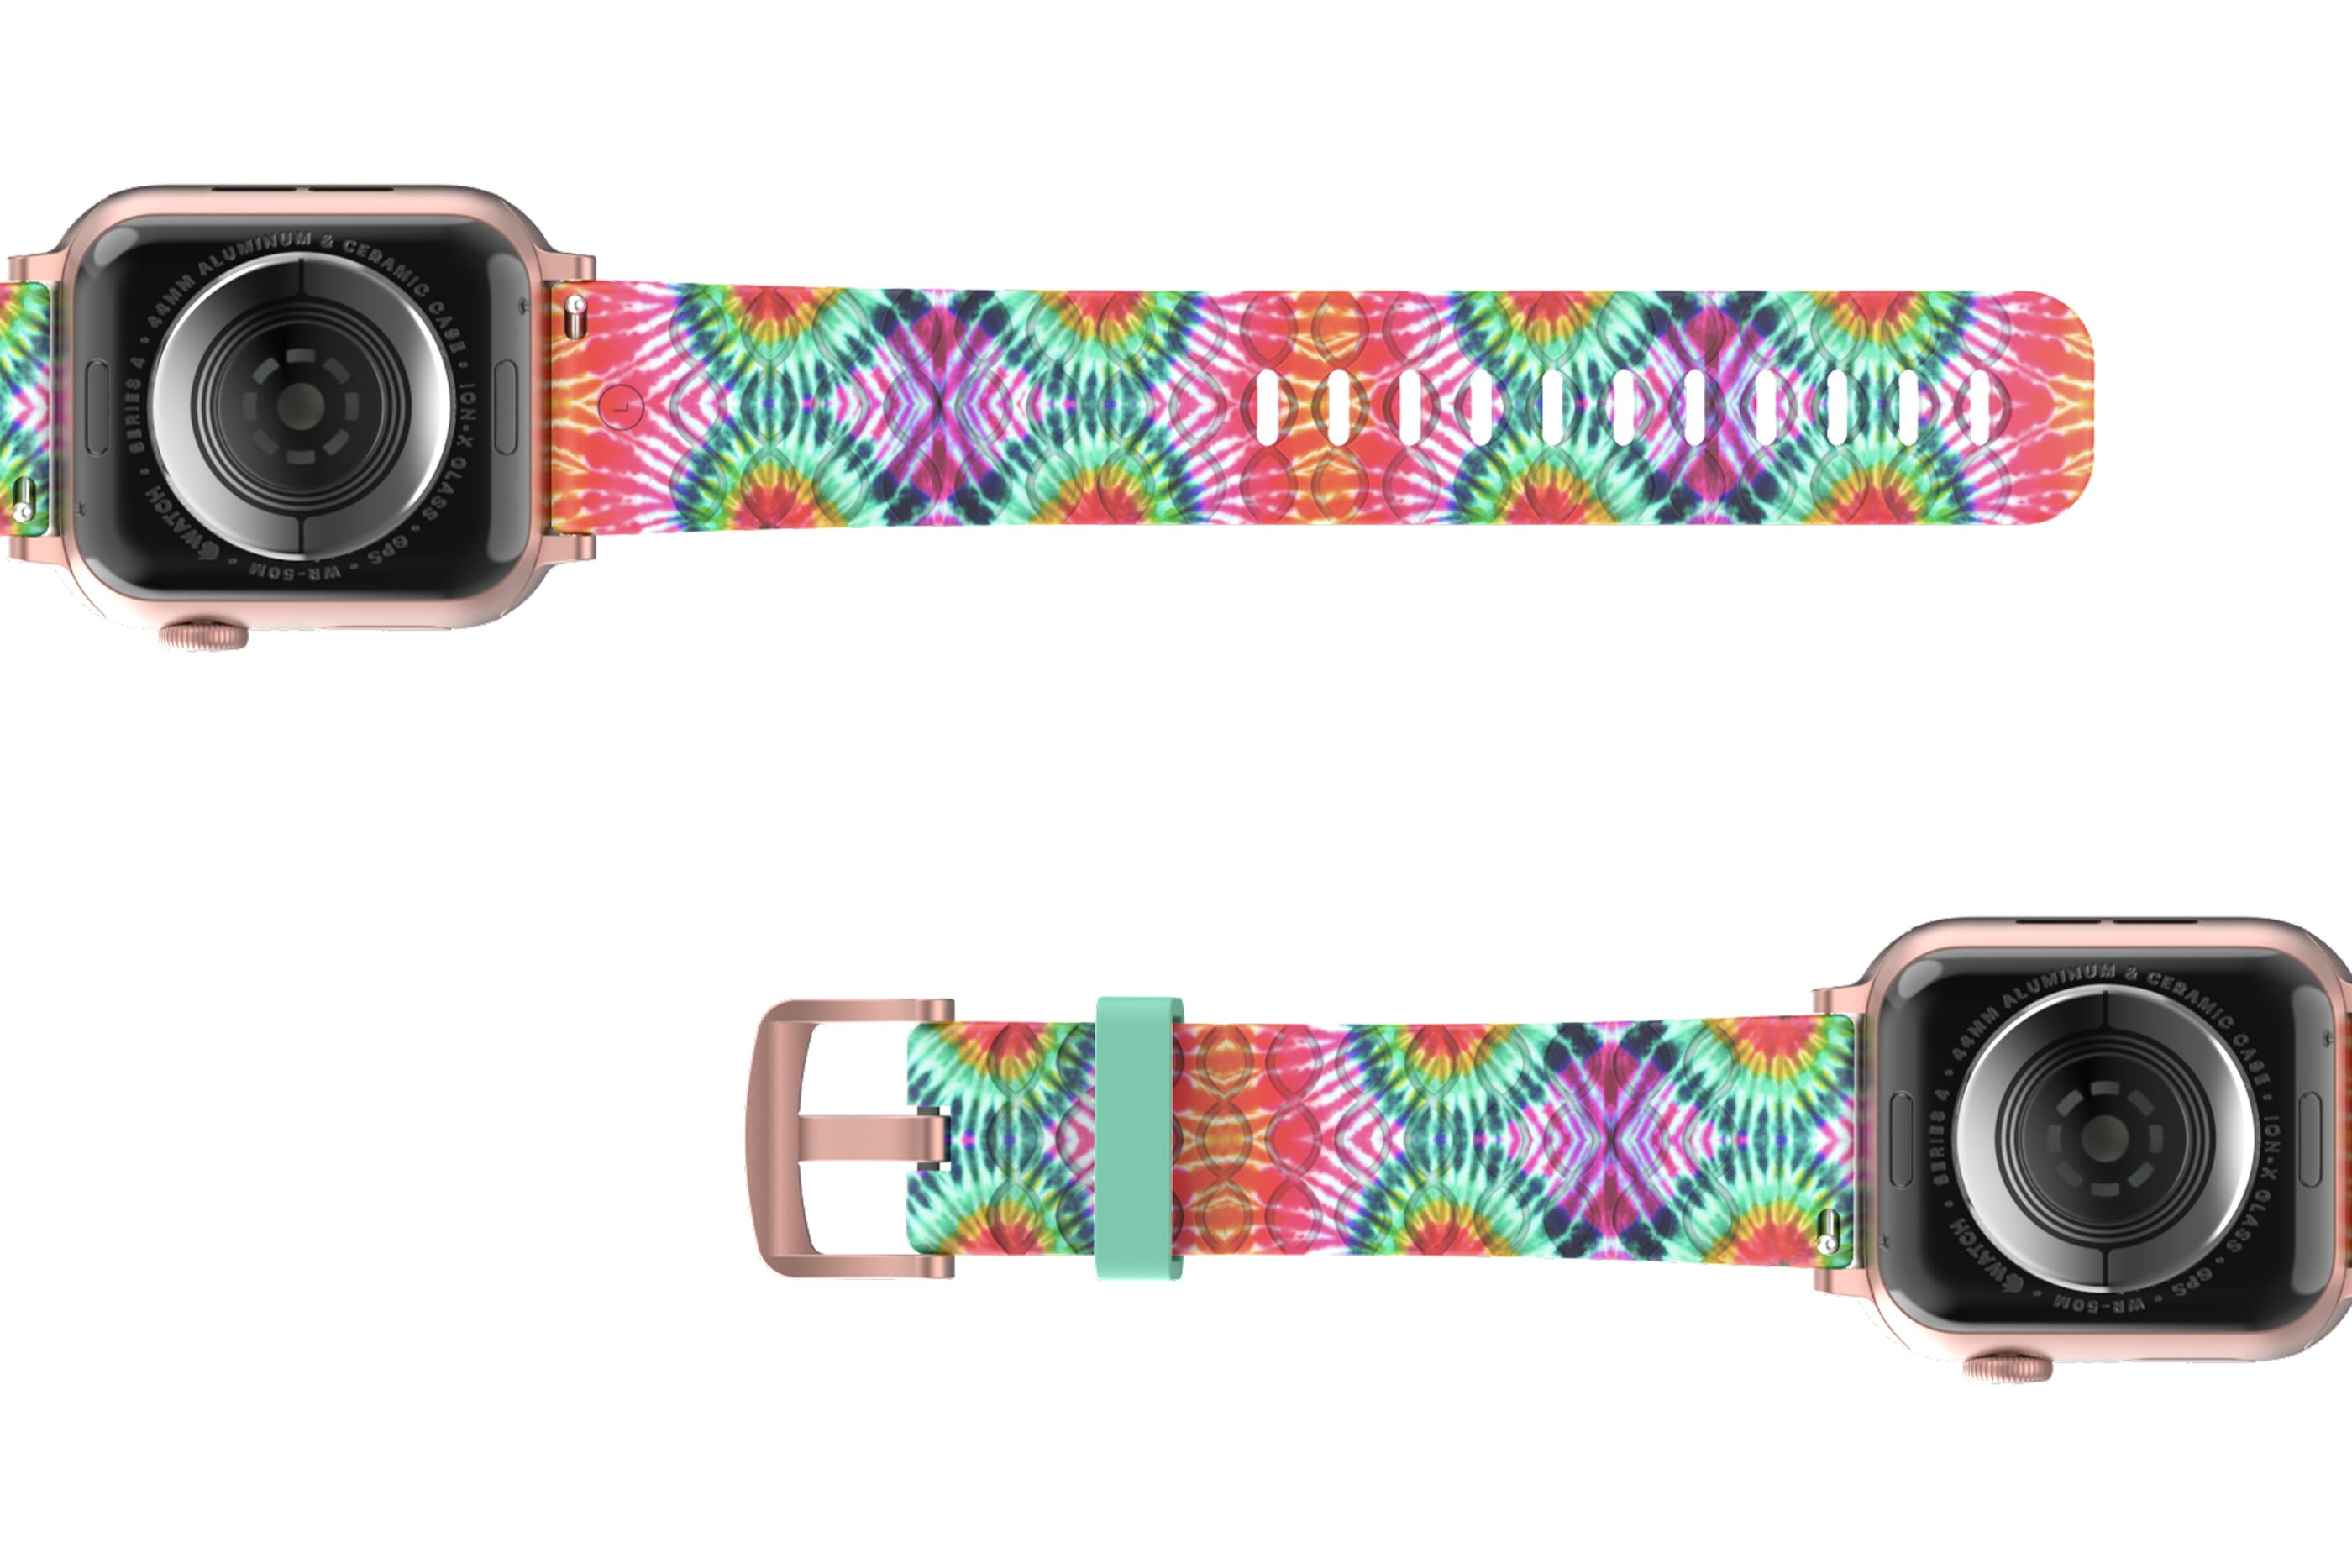 Gypsy Eyes Apple   watch band with rose gold hardware viewed bottom up